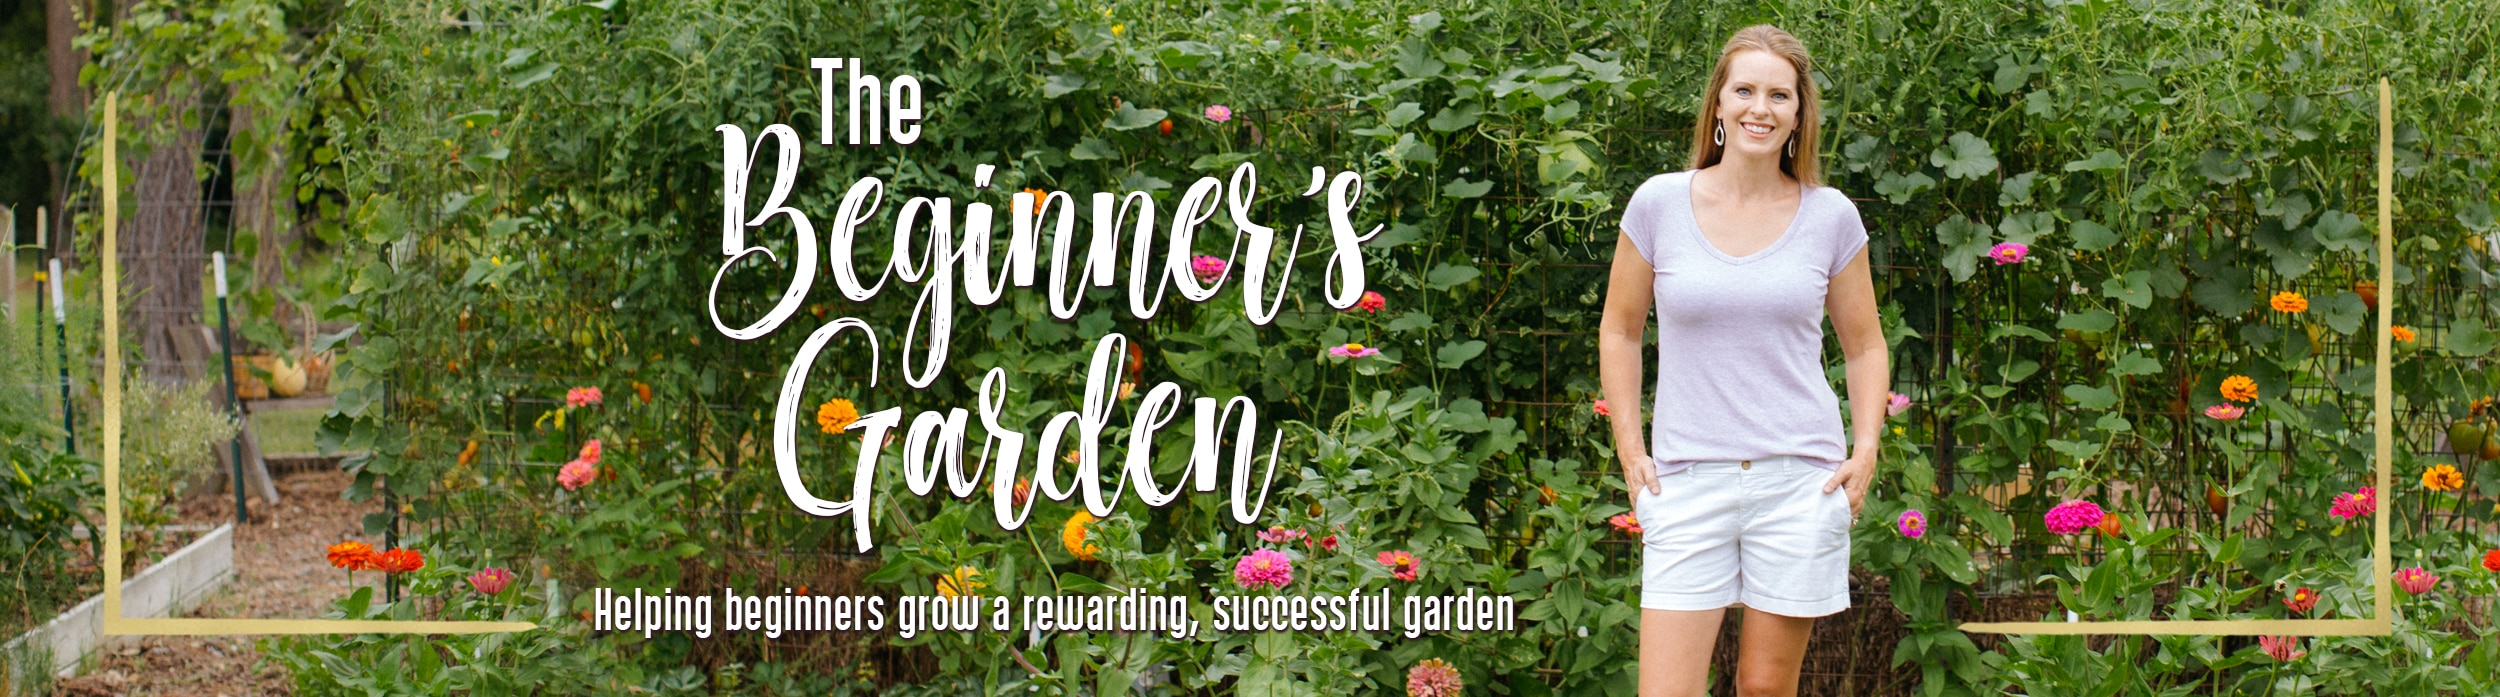 The Beginners Garden - Journey with Jill